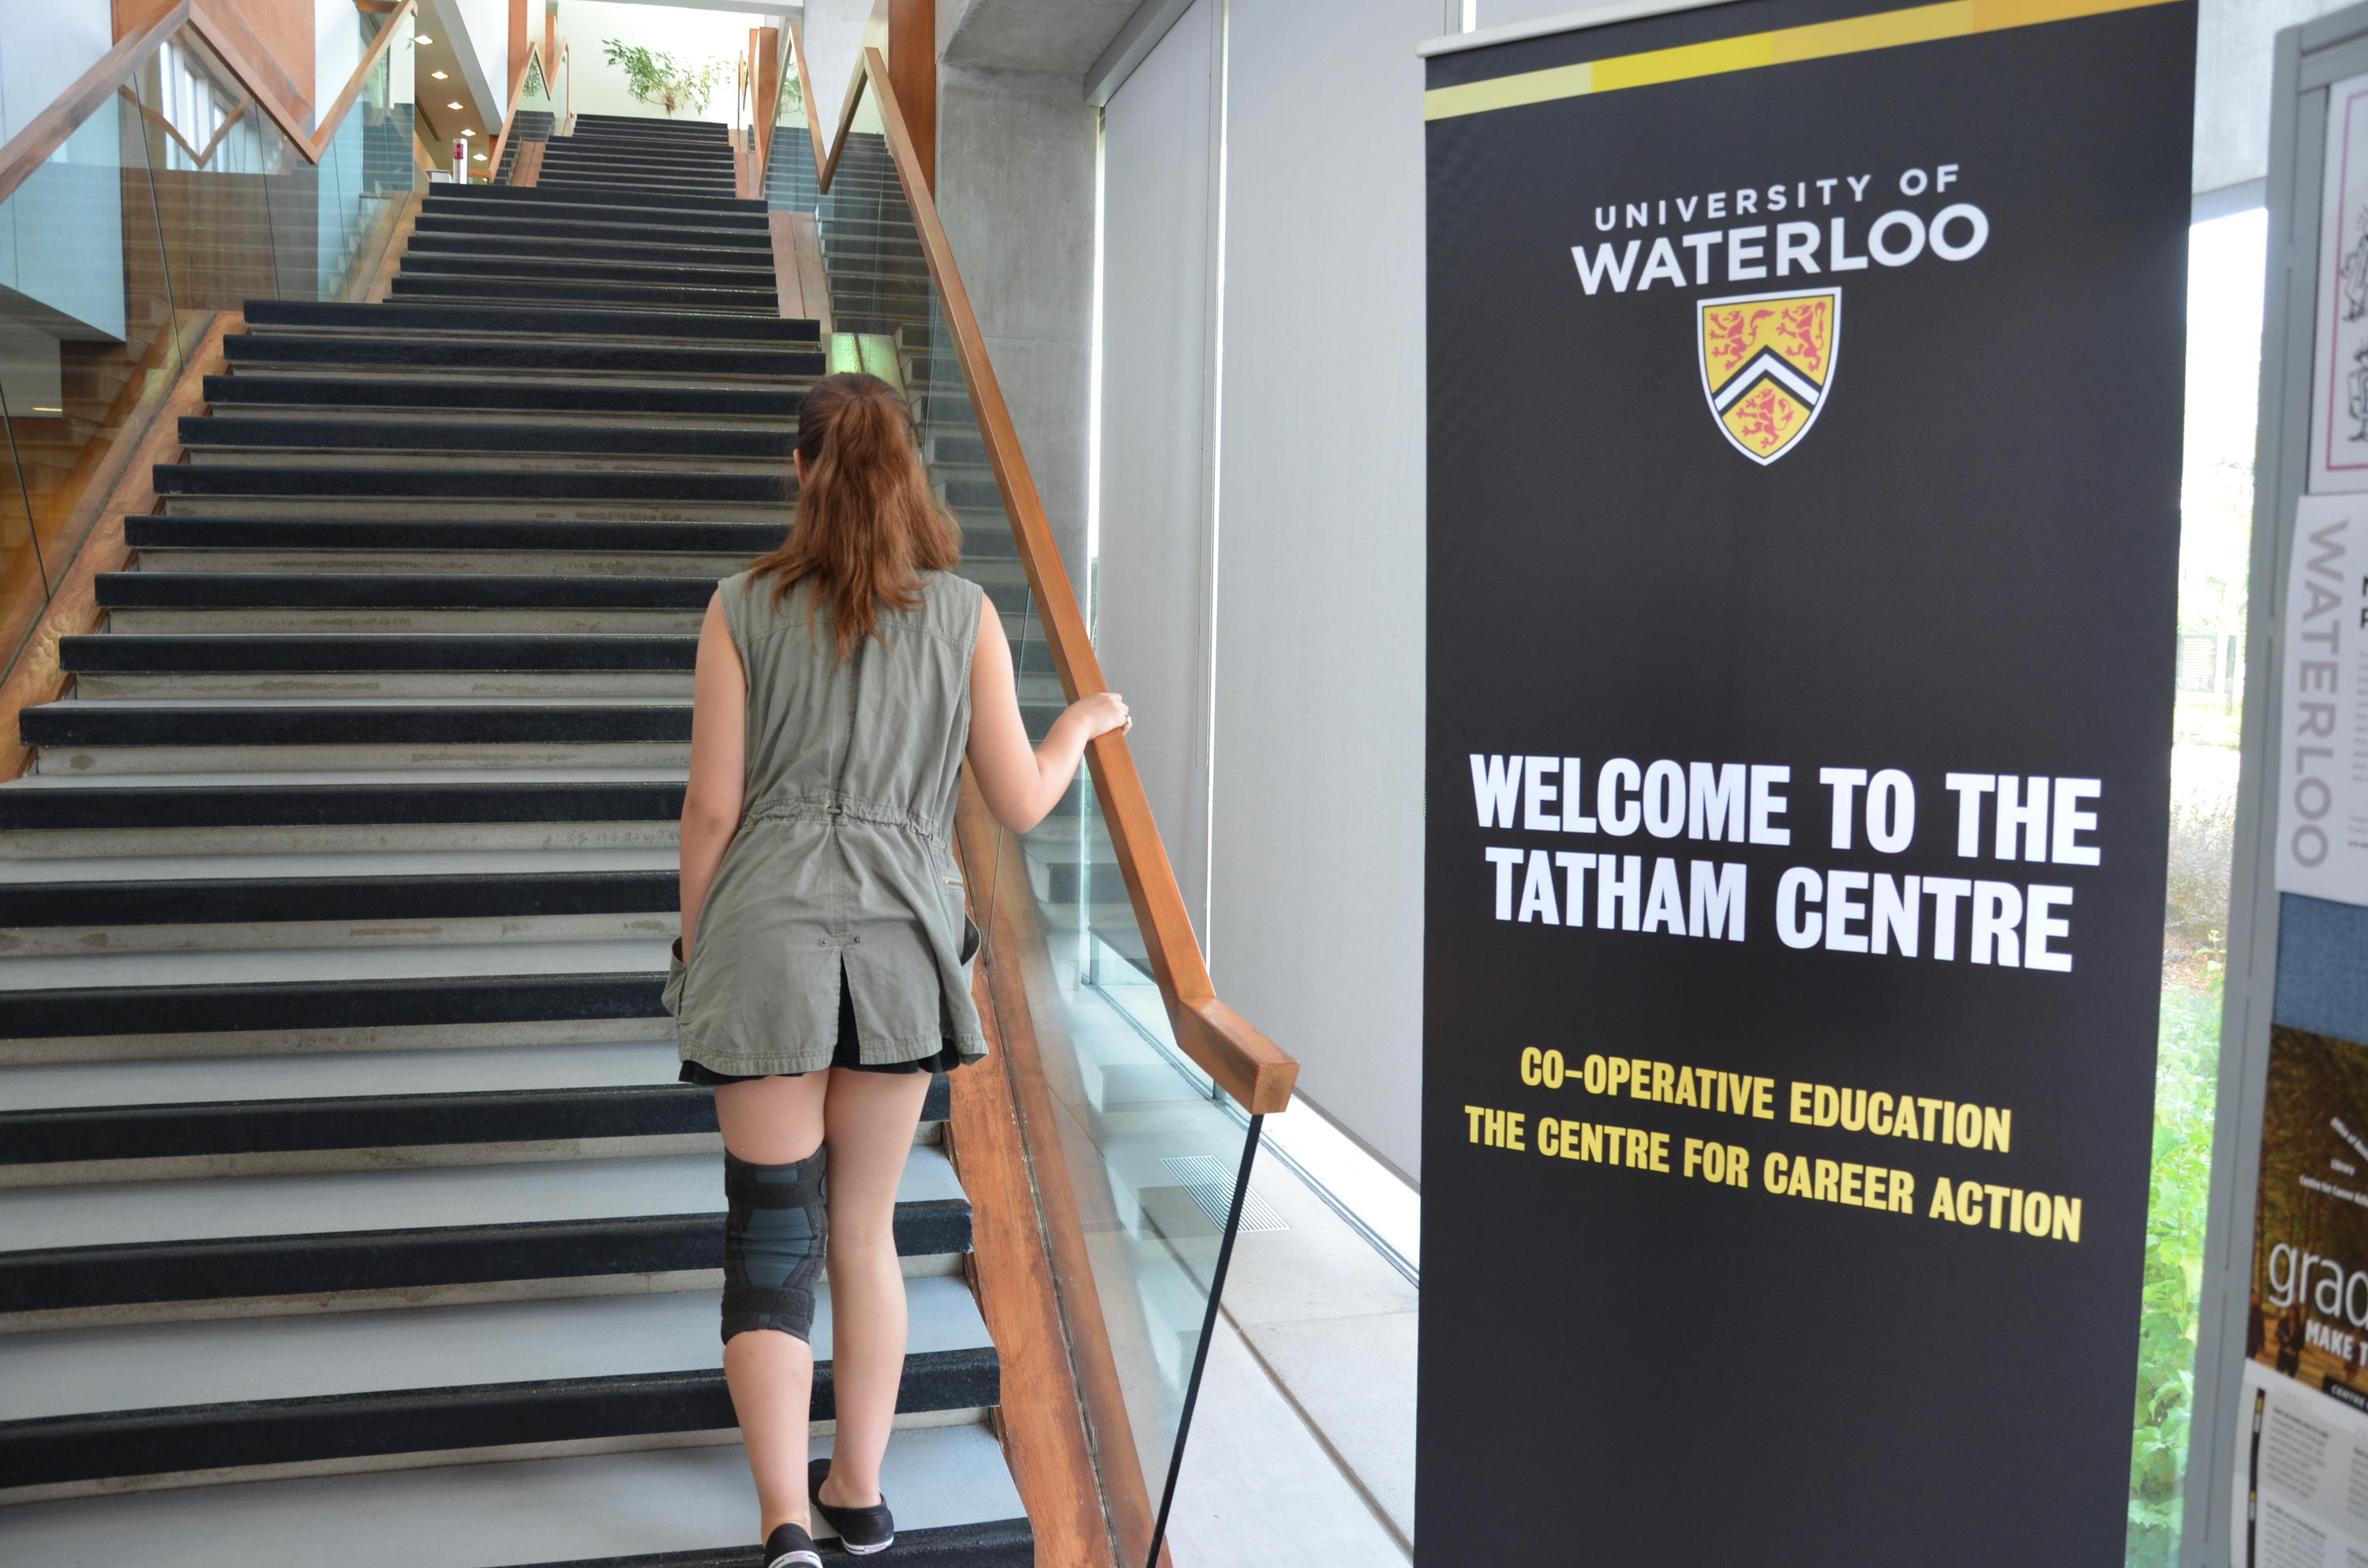 Kyrie walking up the stairs at the Tatham Centre